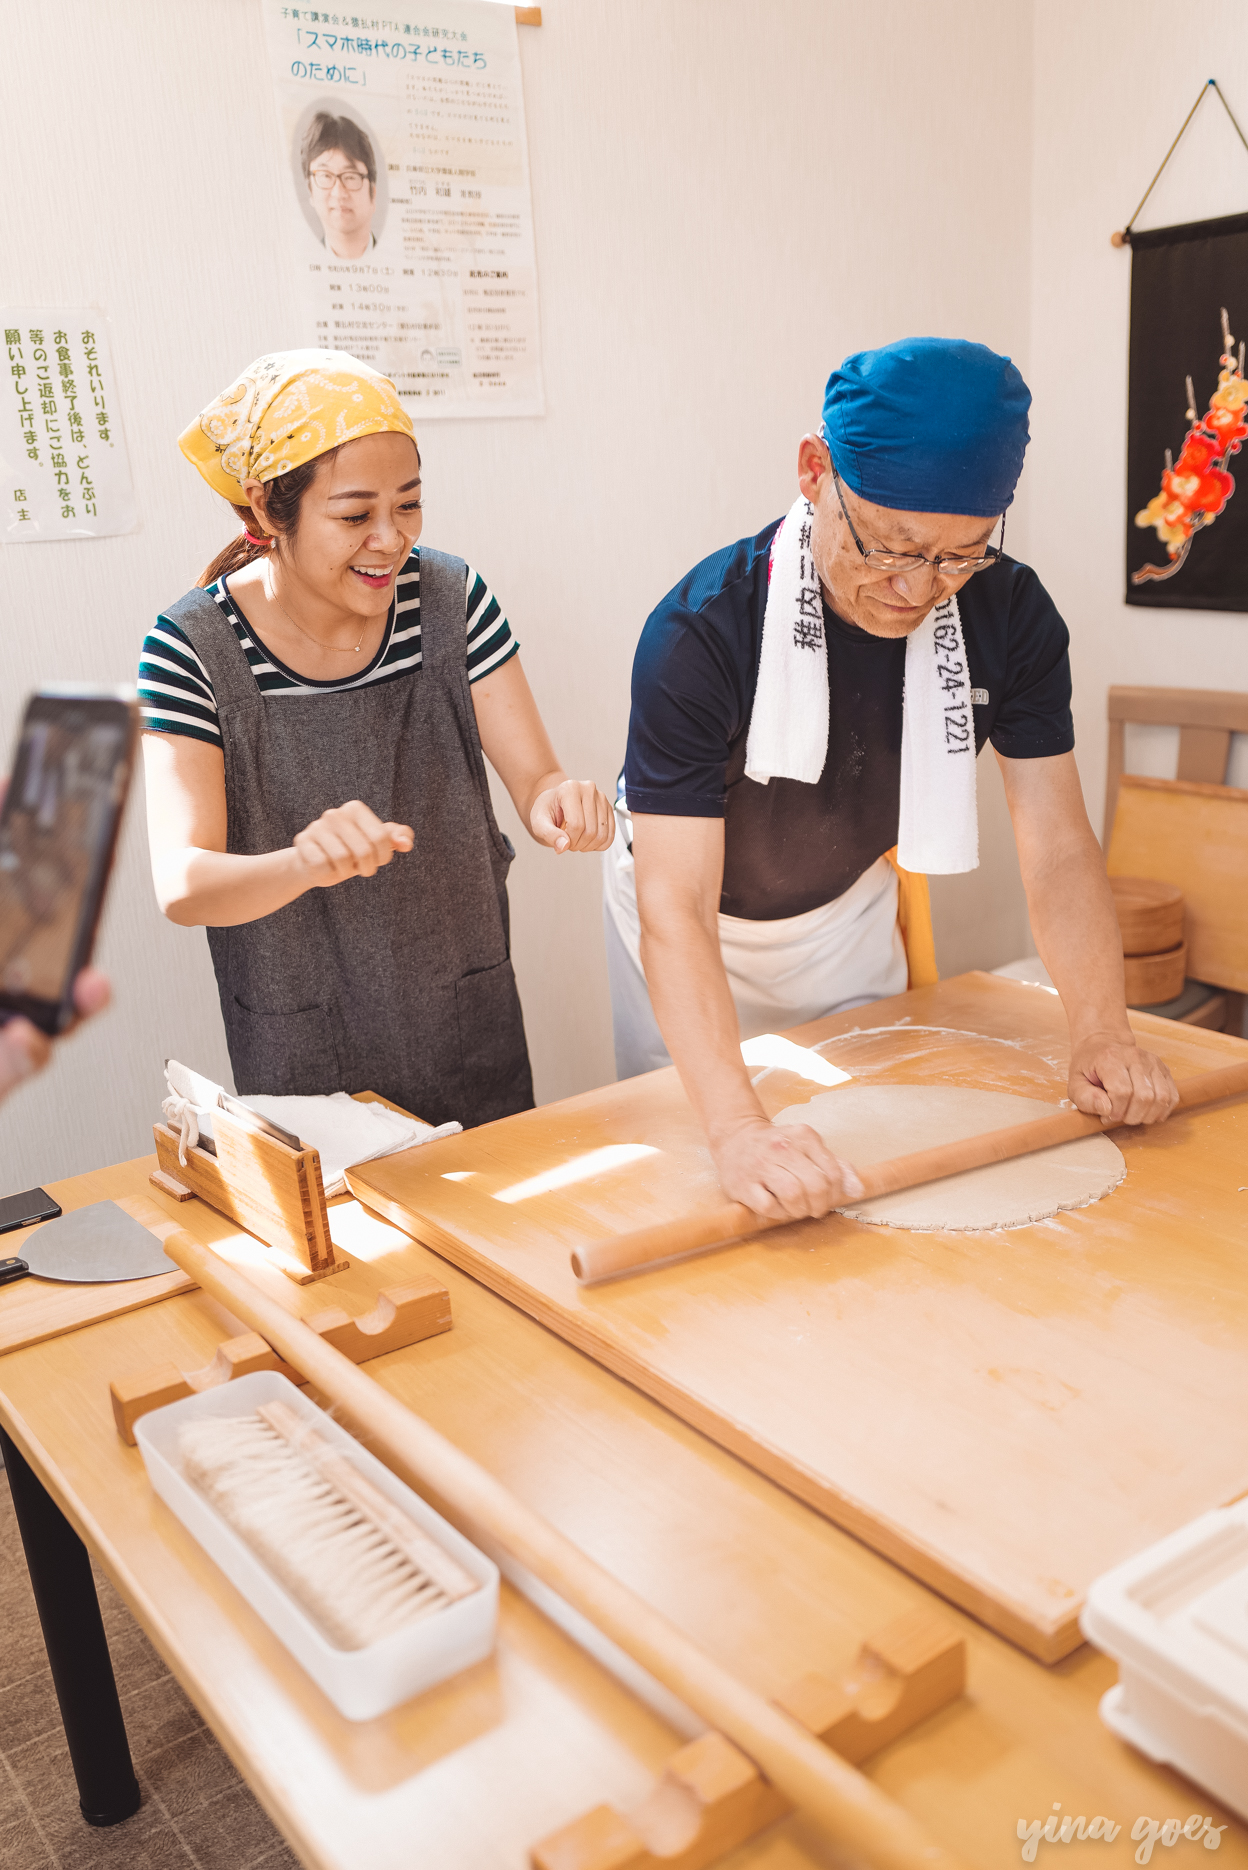 Soba-making experience in Wakkanai